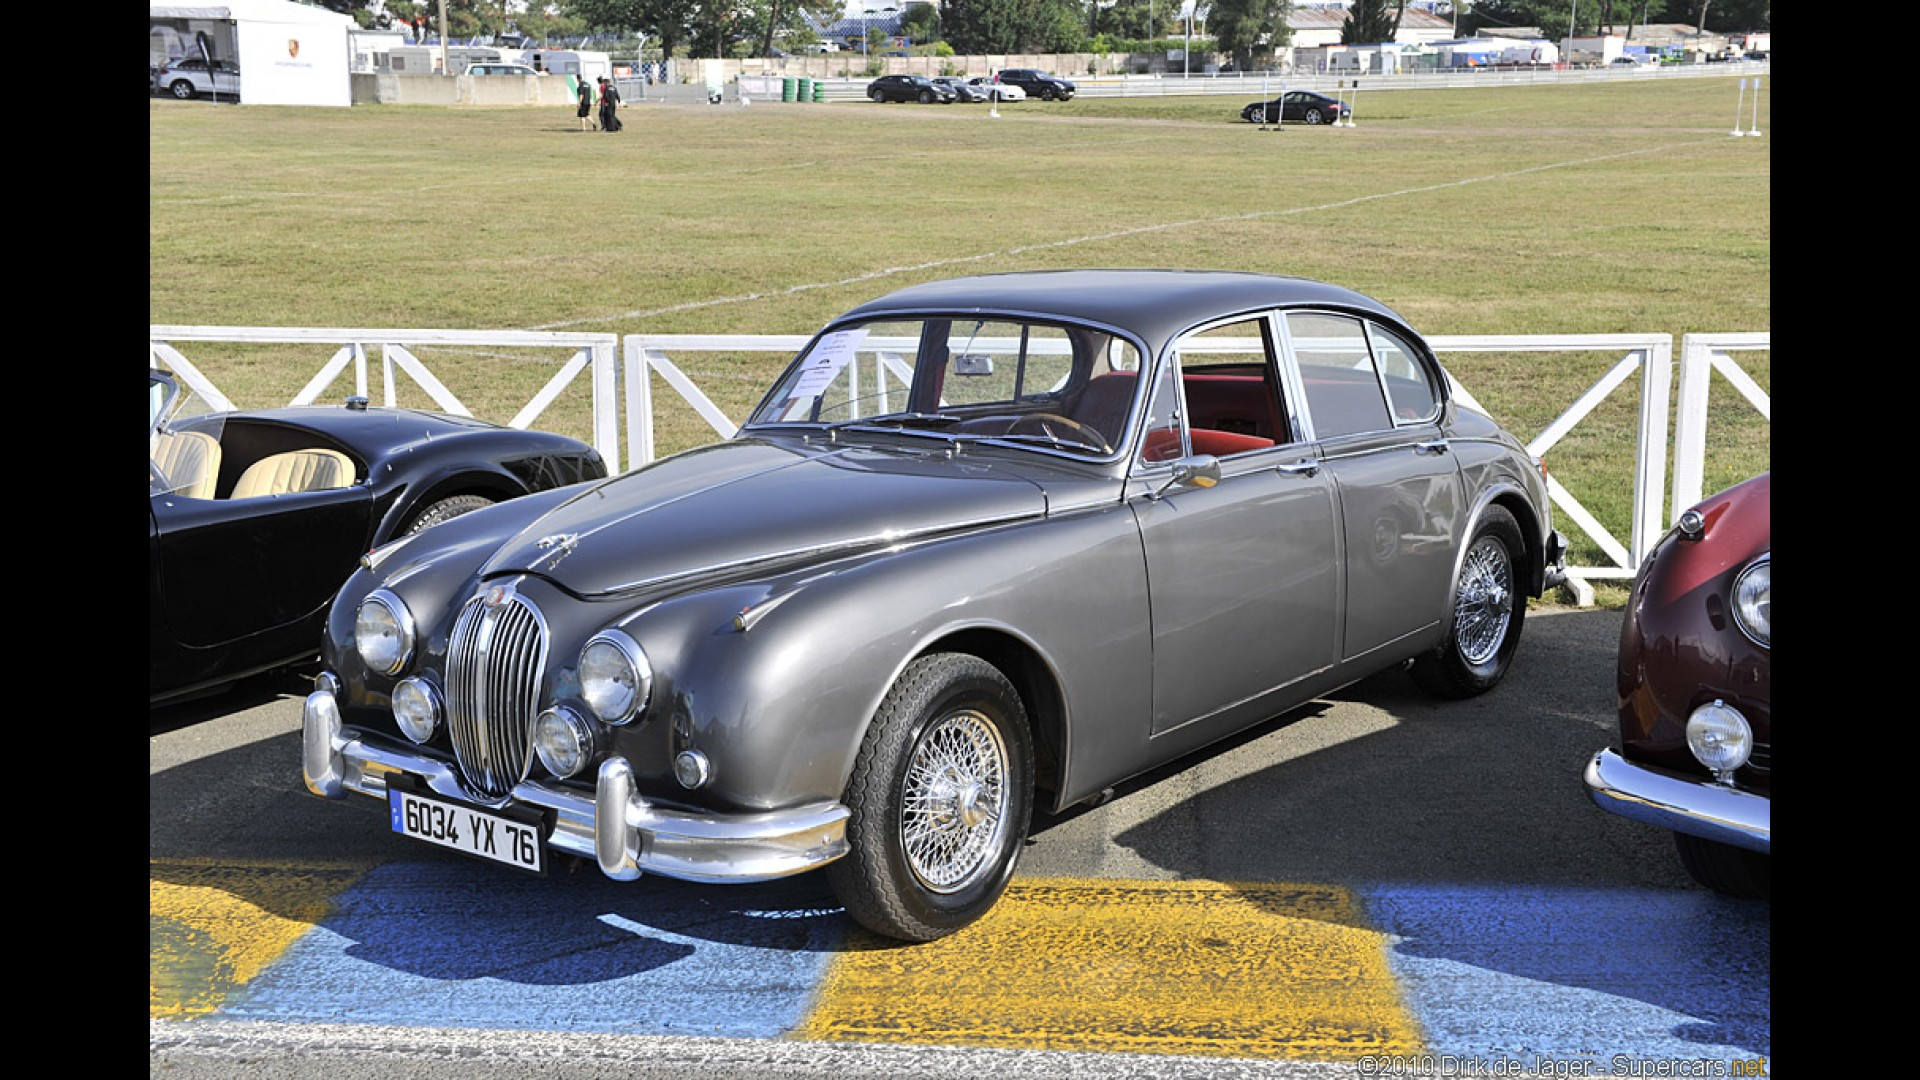 Jaguar Daimler Double Six 5.3 Coupe Coombs | jaguar | Pinterest ...